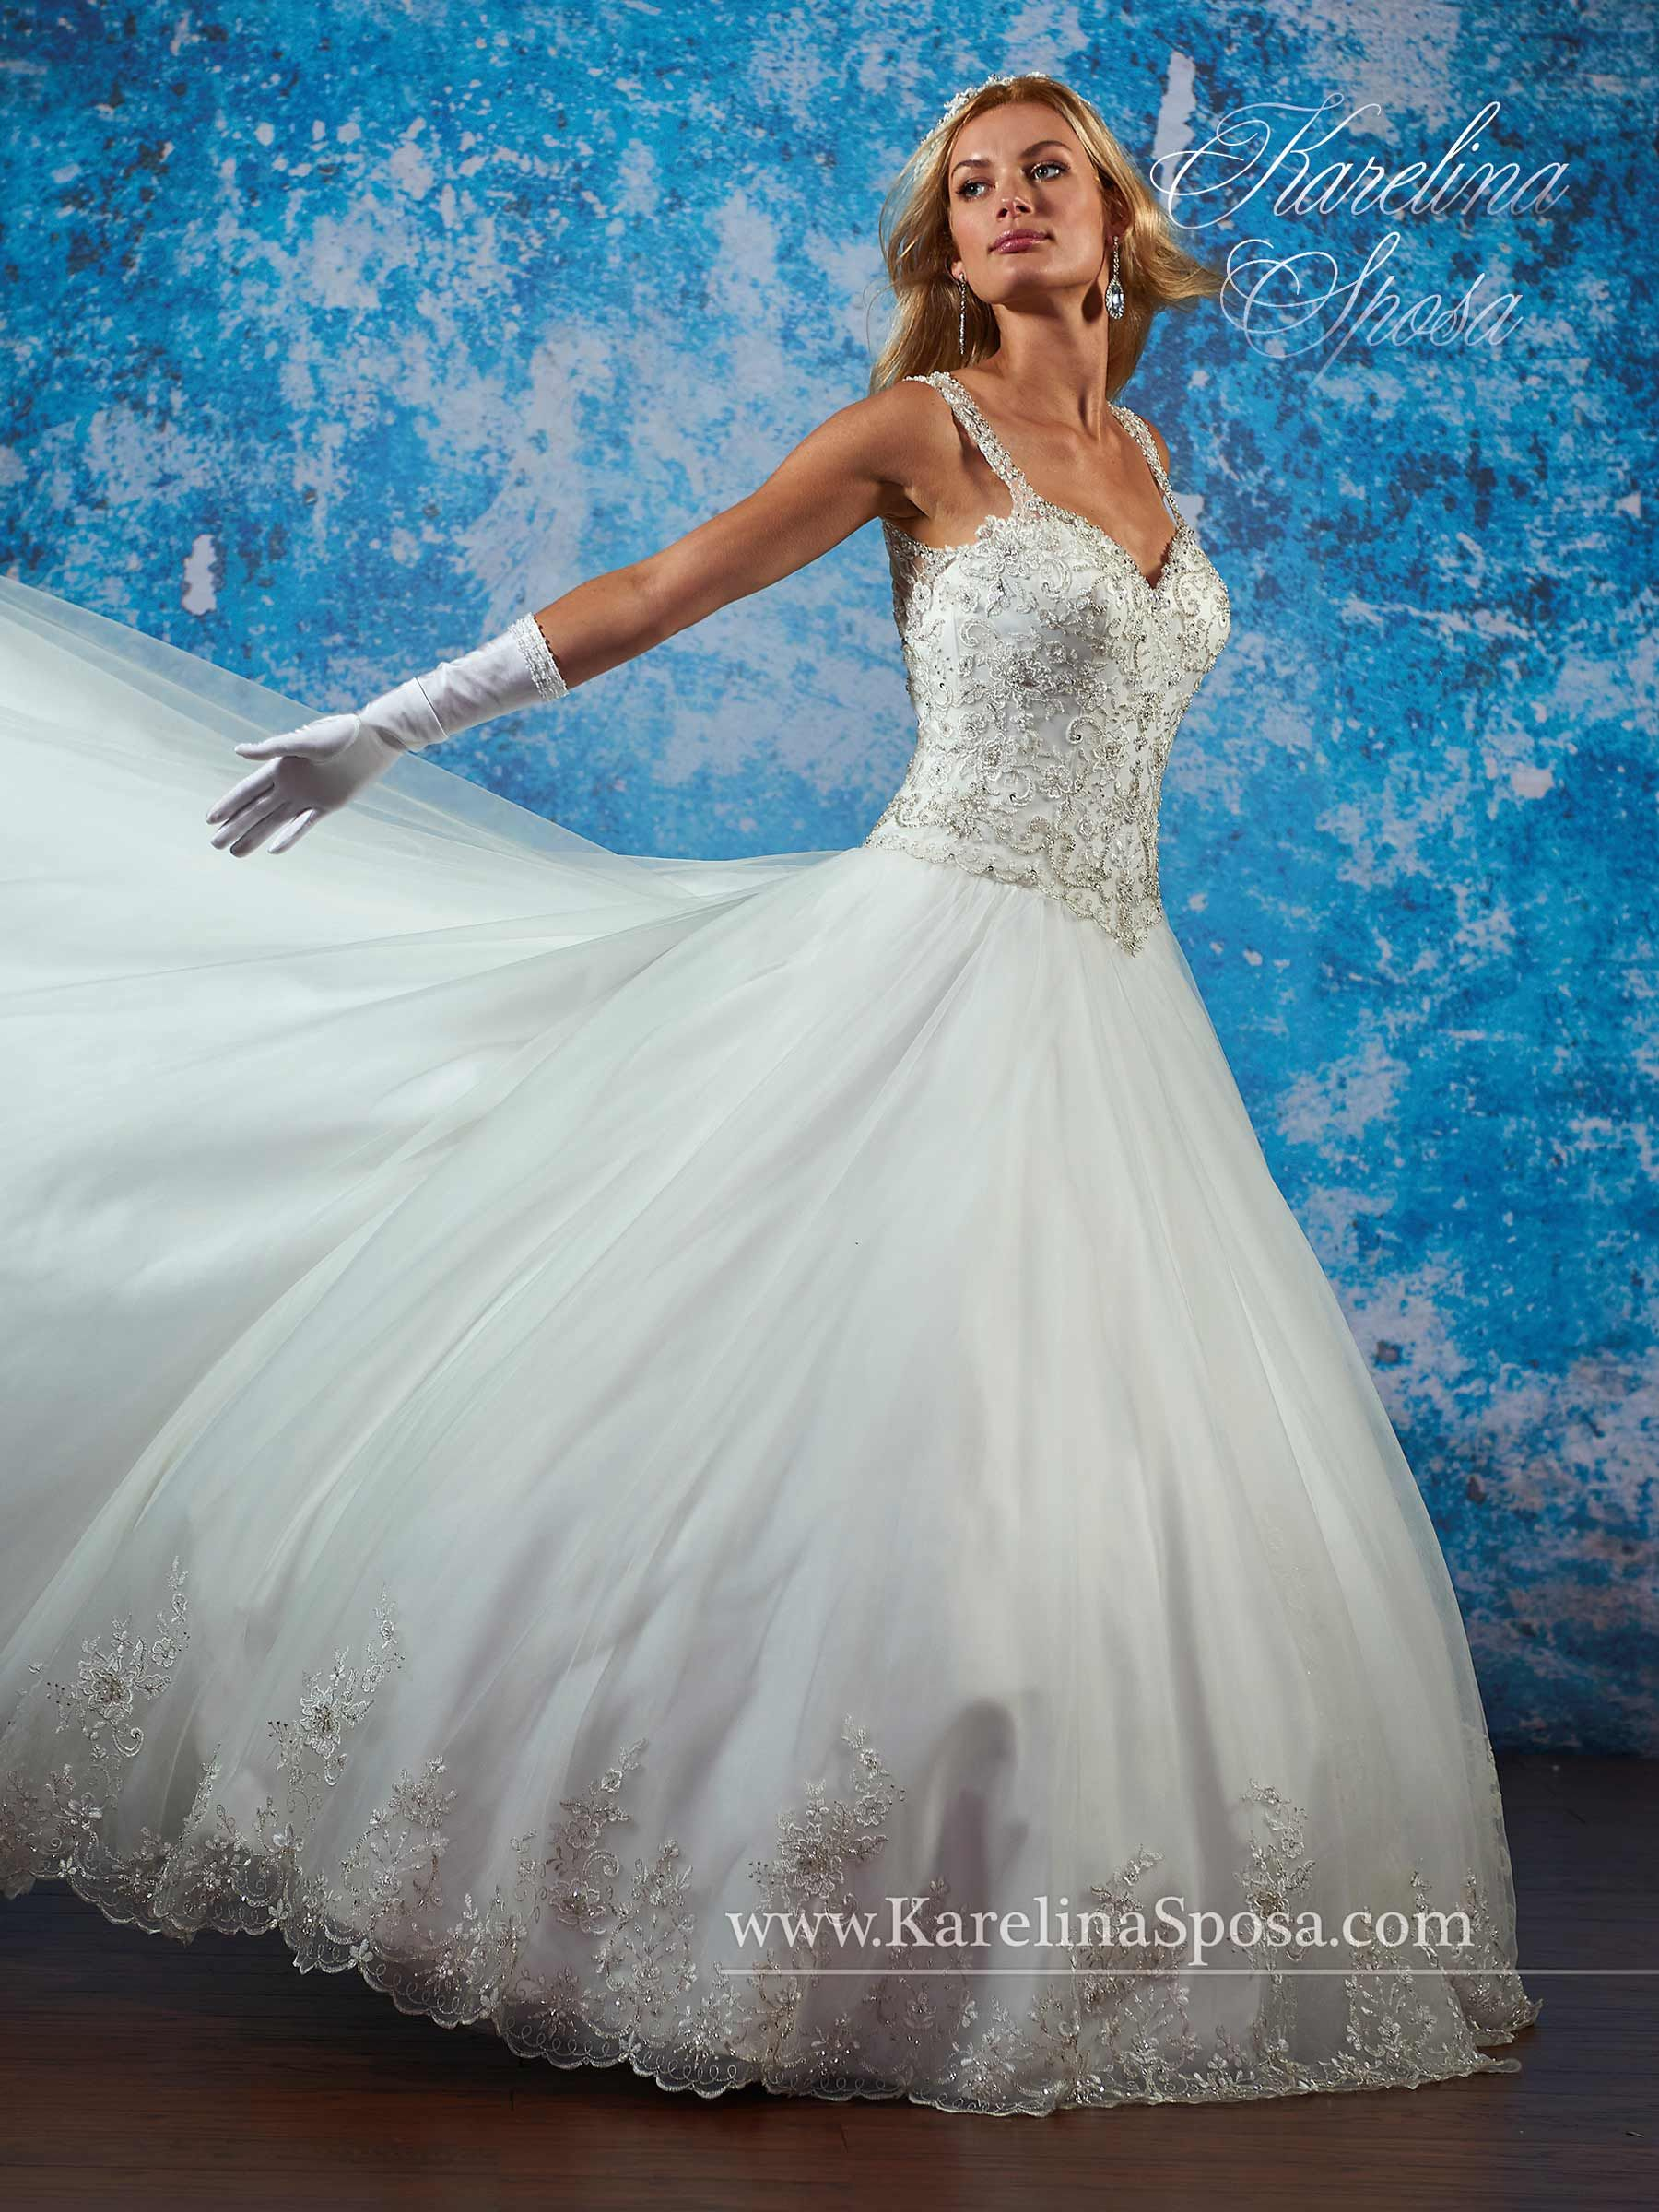 Bridal Gowns - Karelina Sposa - Style: C8077 by Mary\'s Bridal Gowns ...